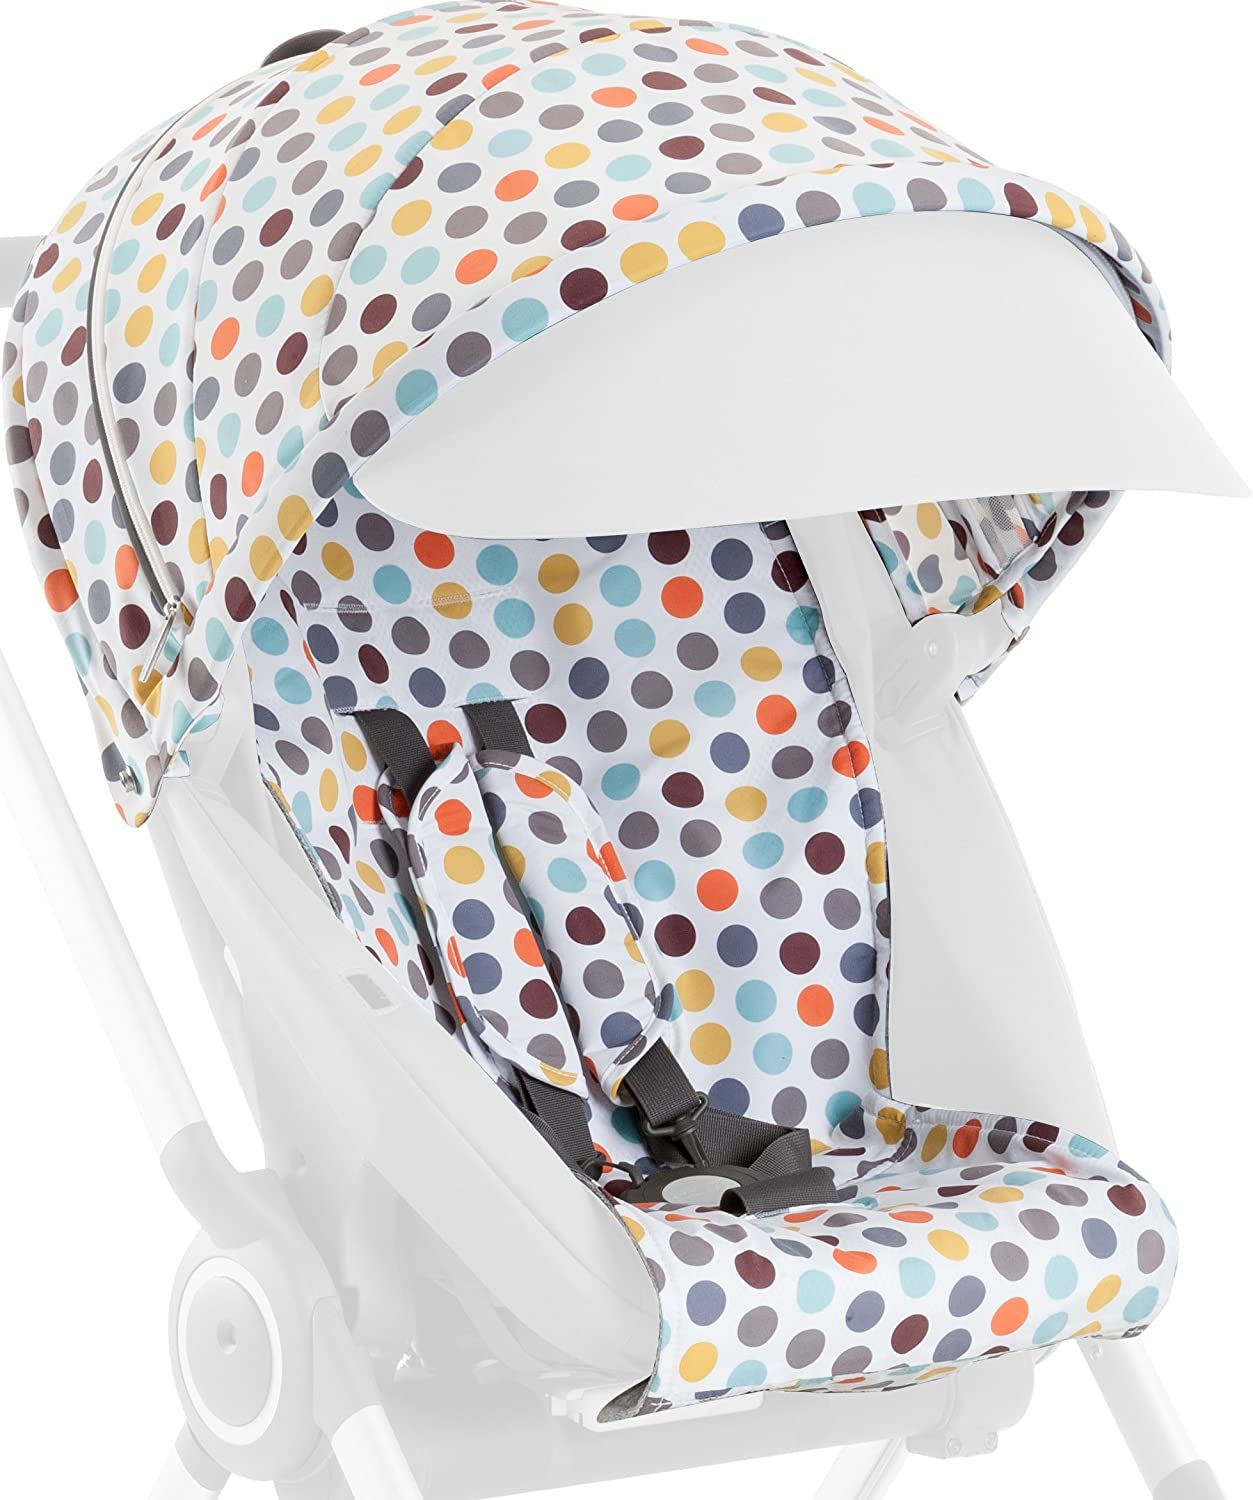 Stokke Scoot Stroller Style Kit - Style your stroller in retro cool - Comes with matching shopping tote - Retro Dots by Stokke